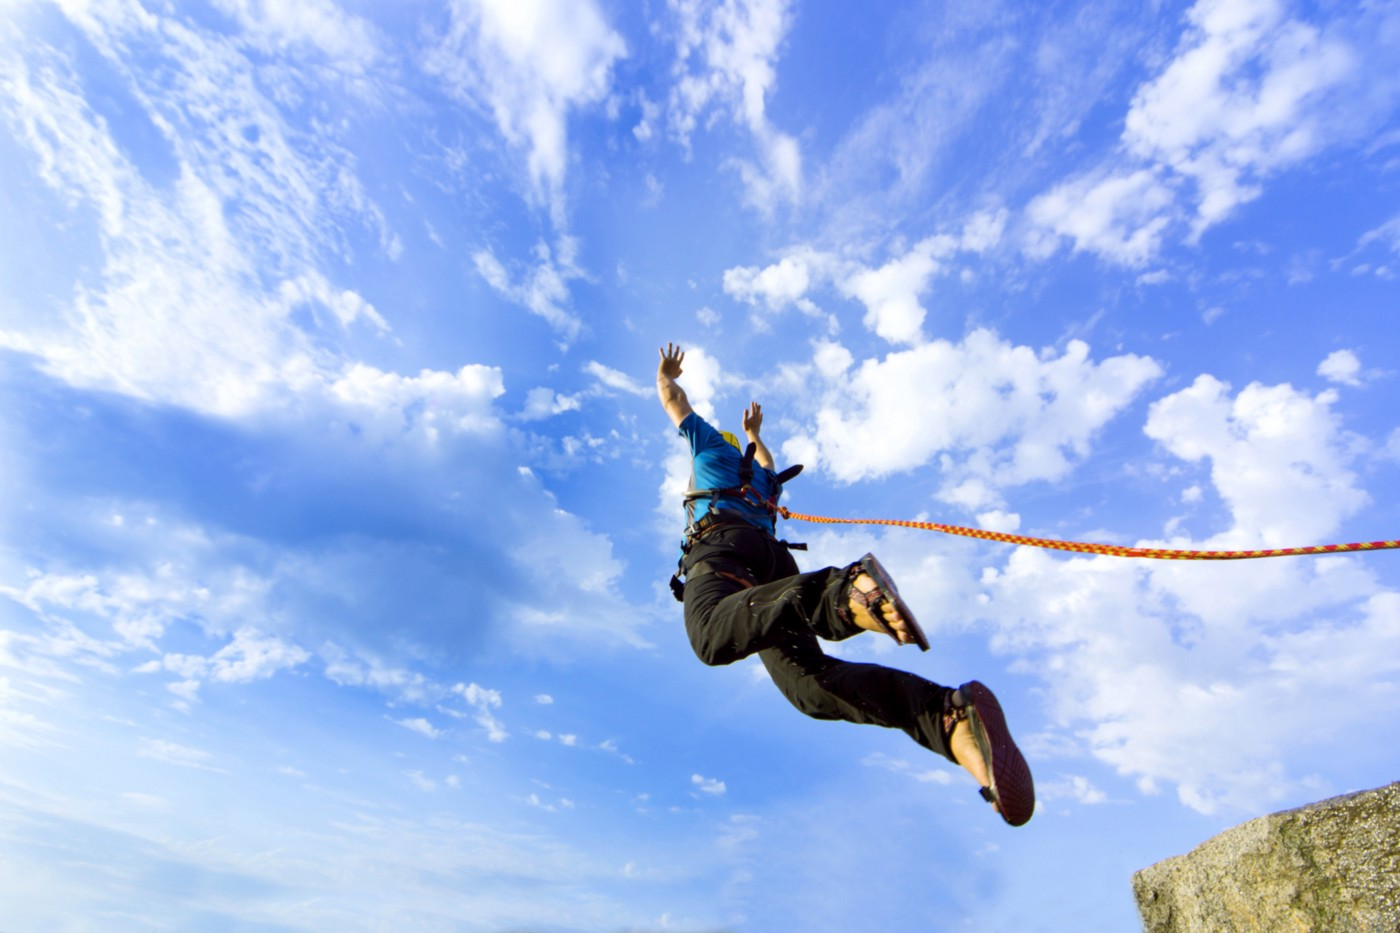 A view of the blue sky as a man bungee jumps.